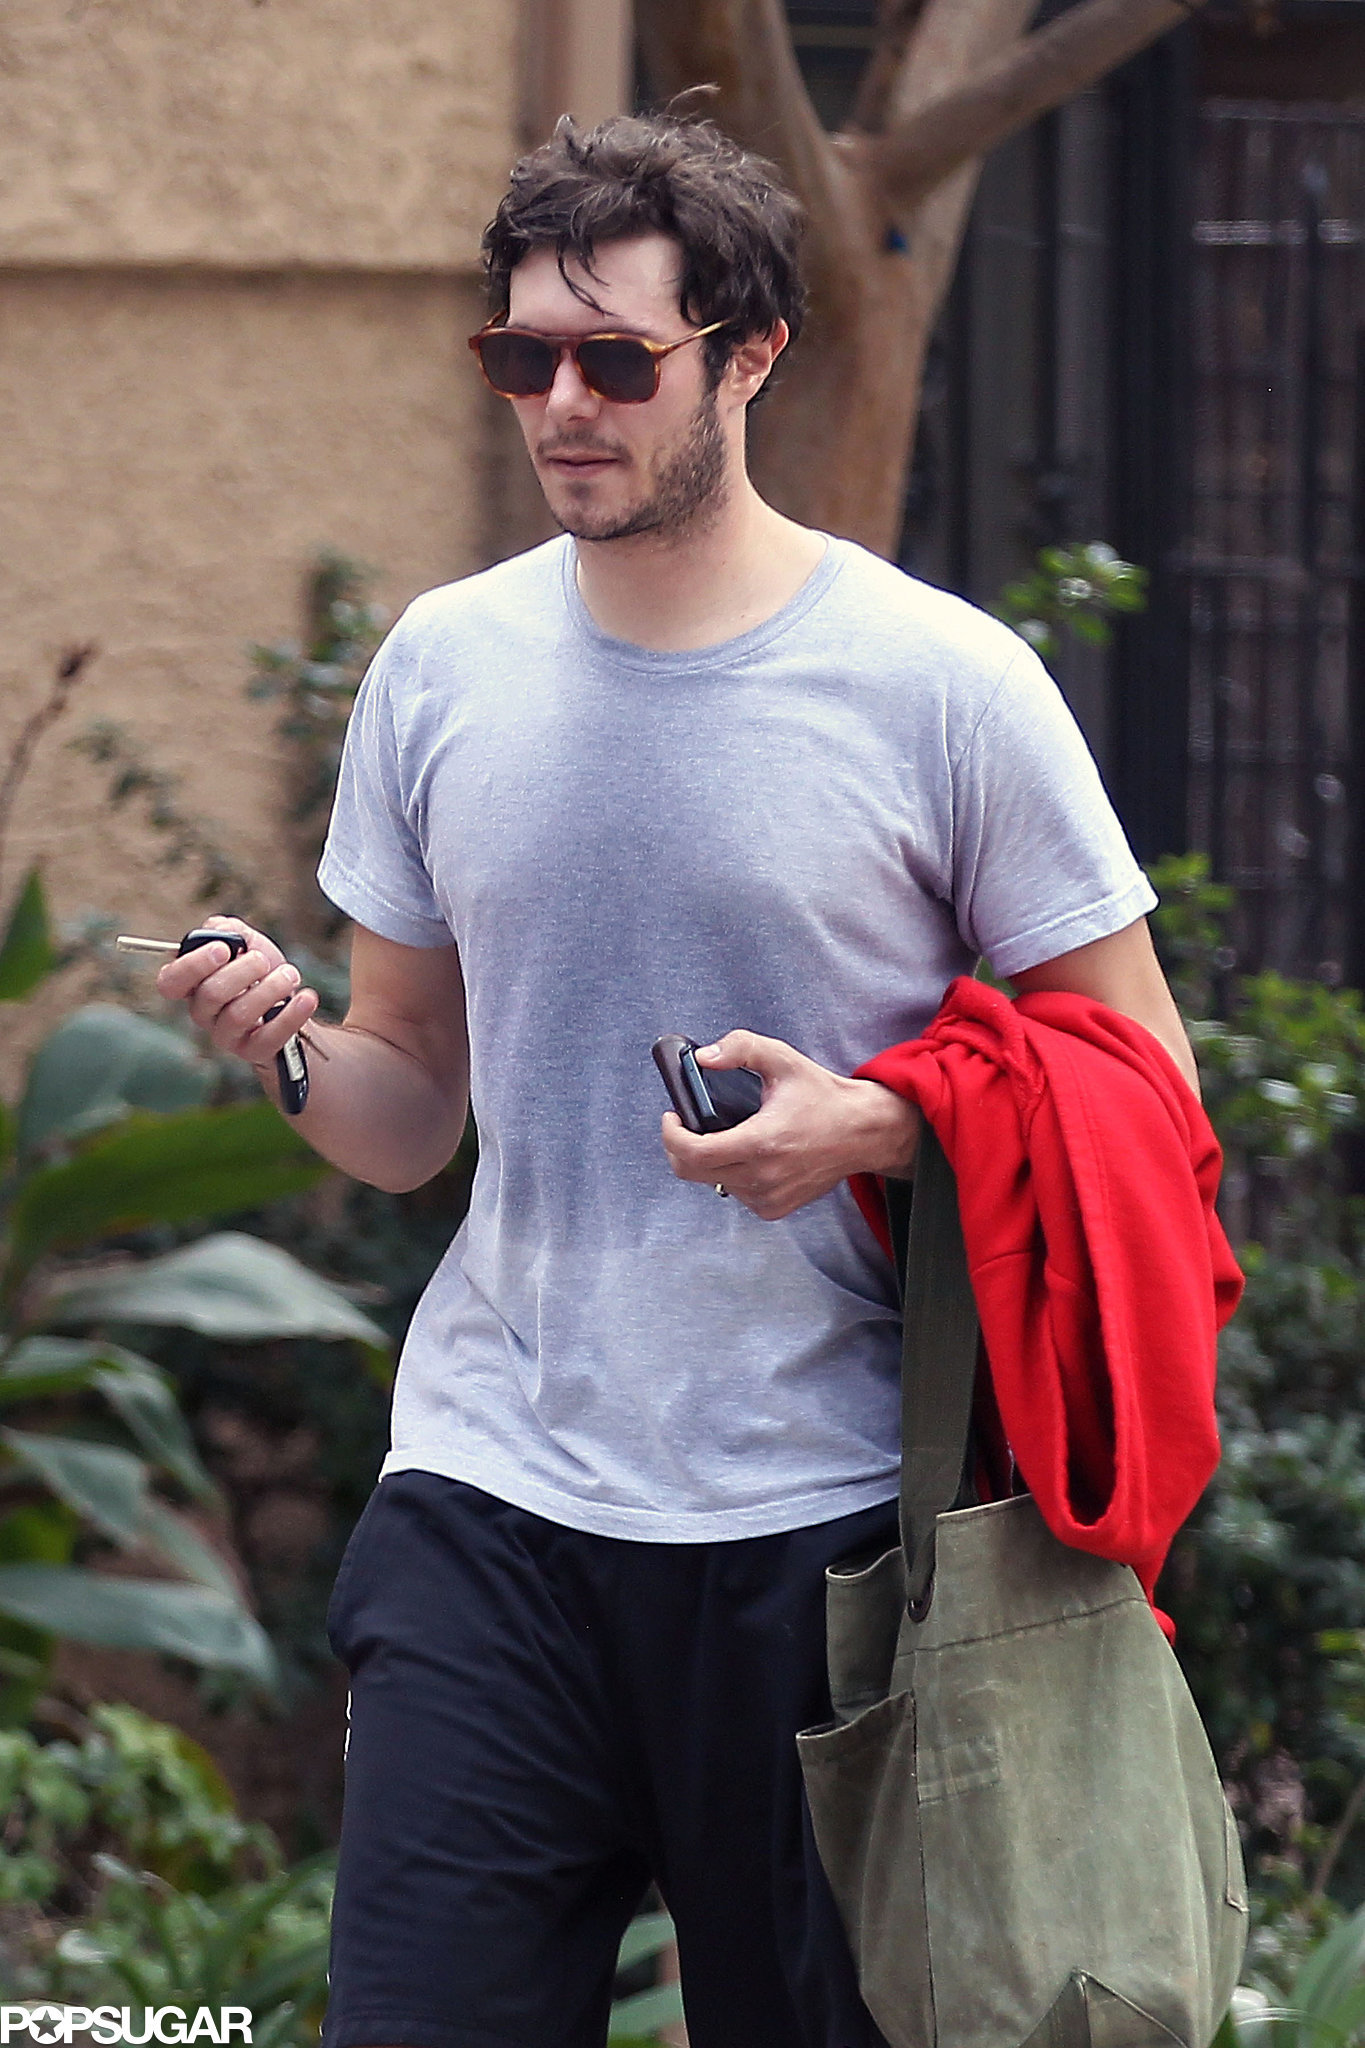 Adam Brody showed off his wedding ring after secretly marrying Leighton Meester.